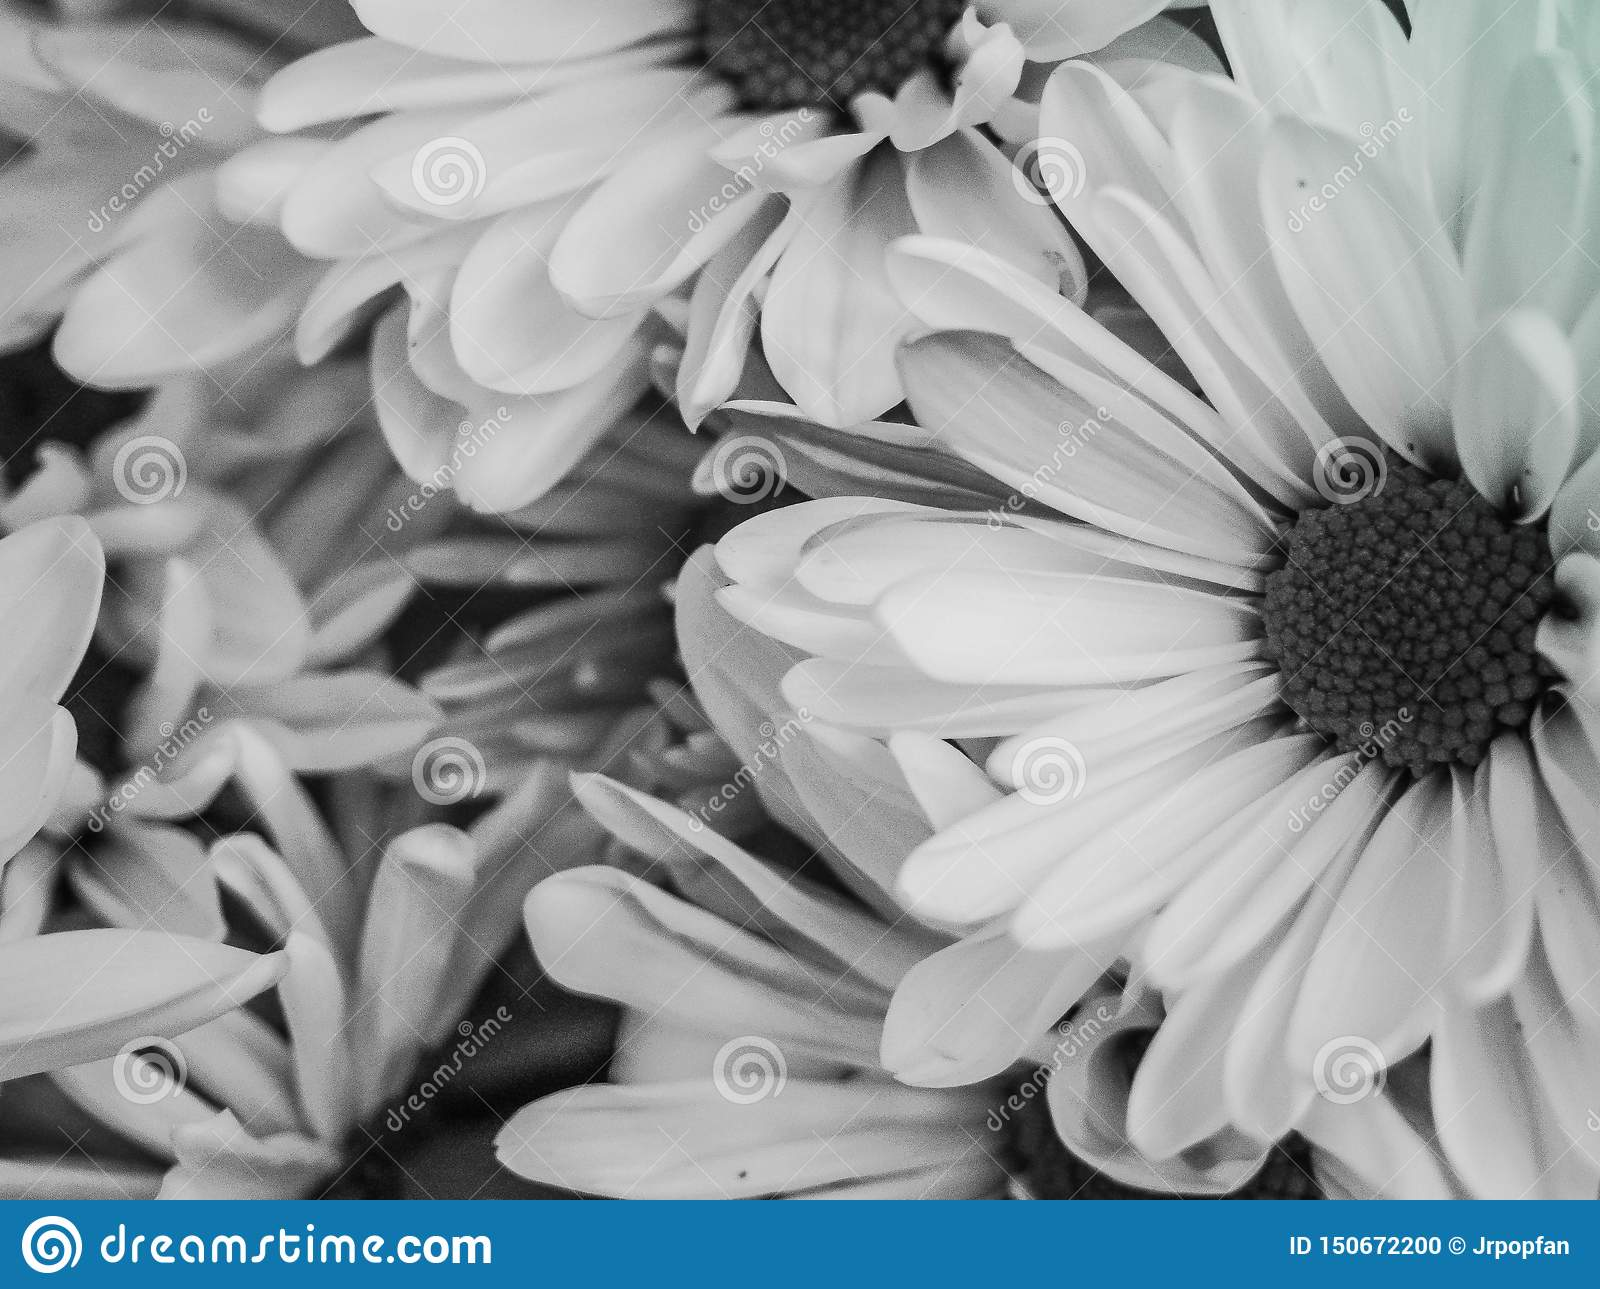 Blooming Daisies Wallpaper Black And White Stock Photo Image Of